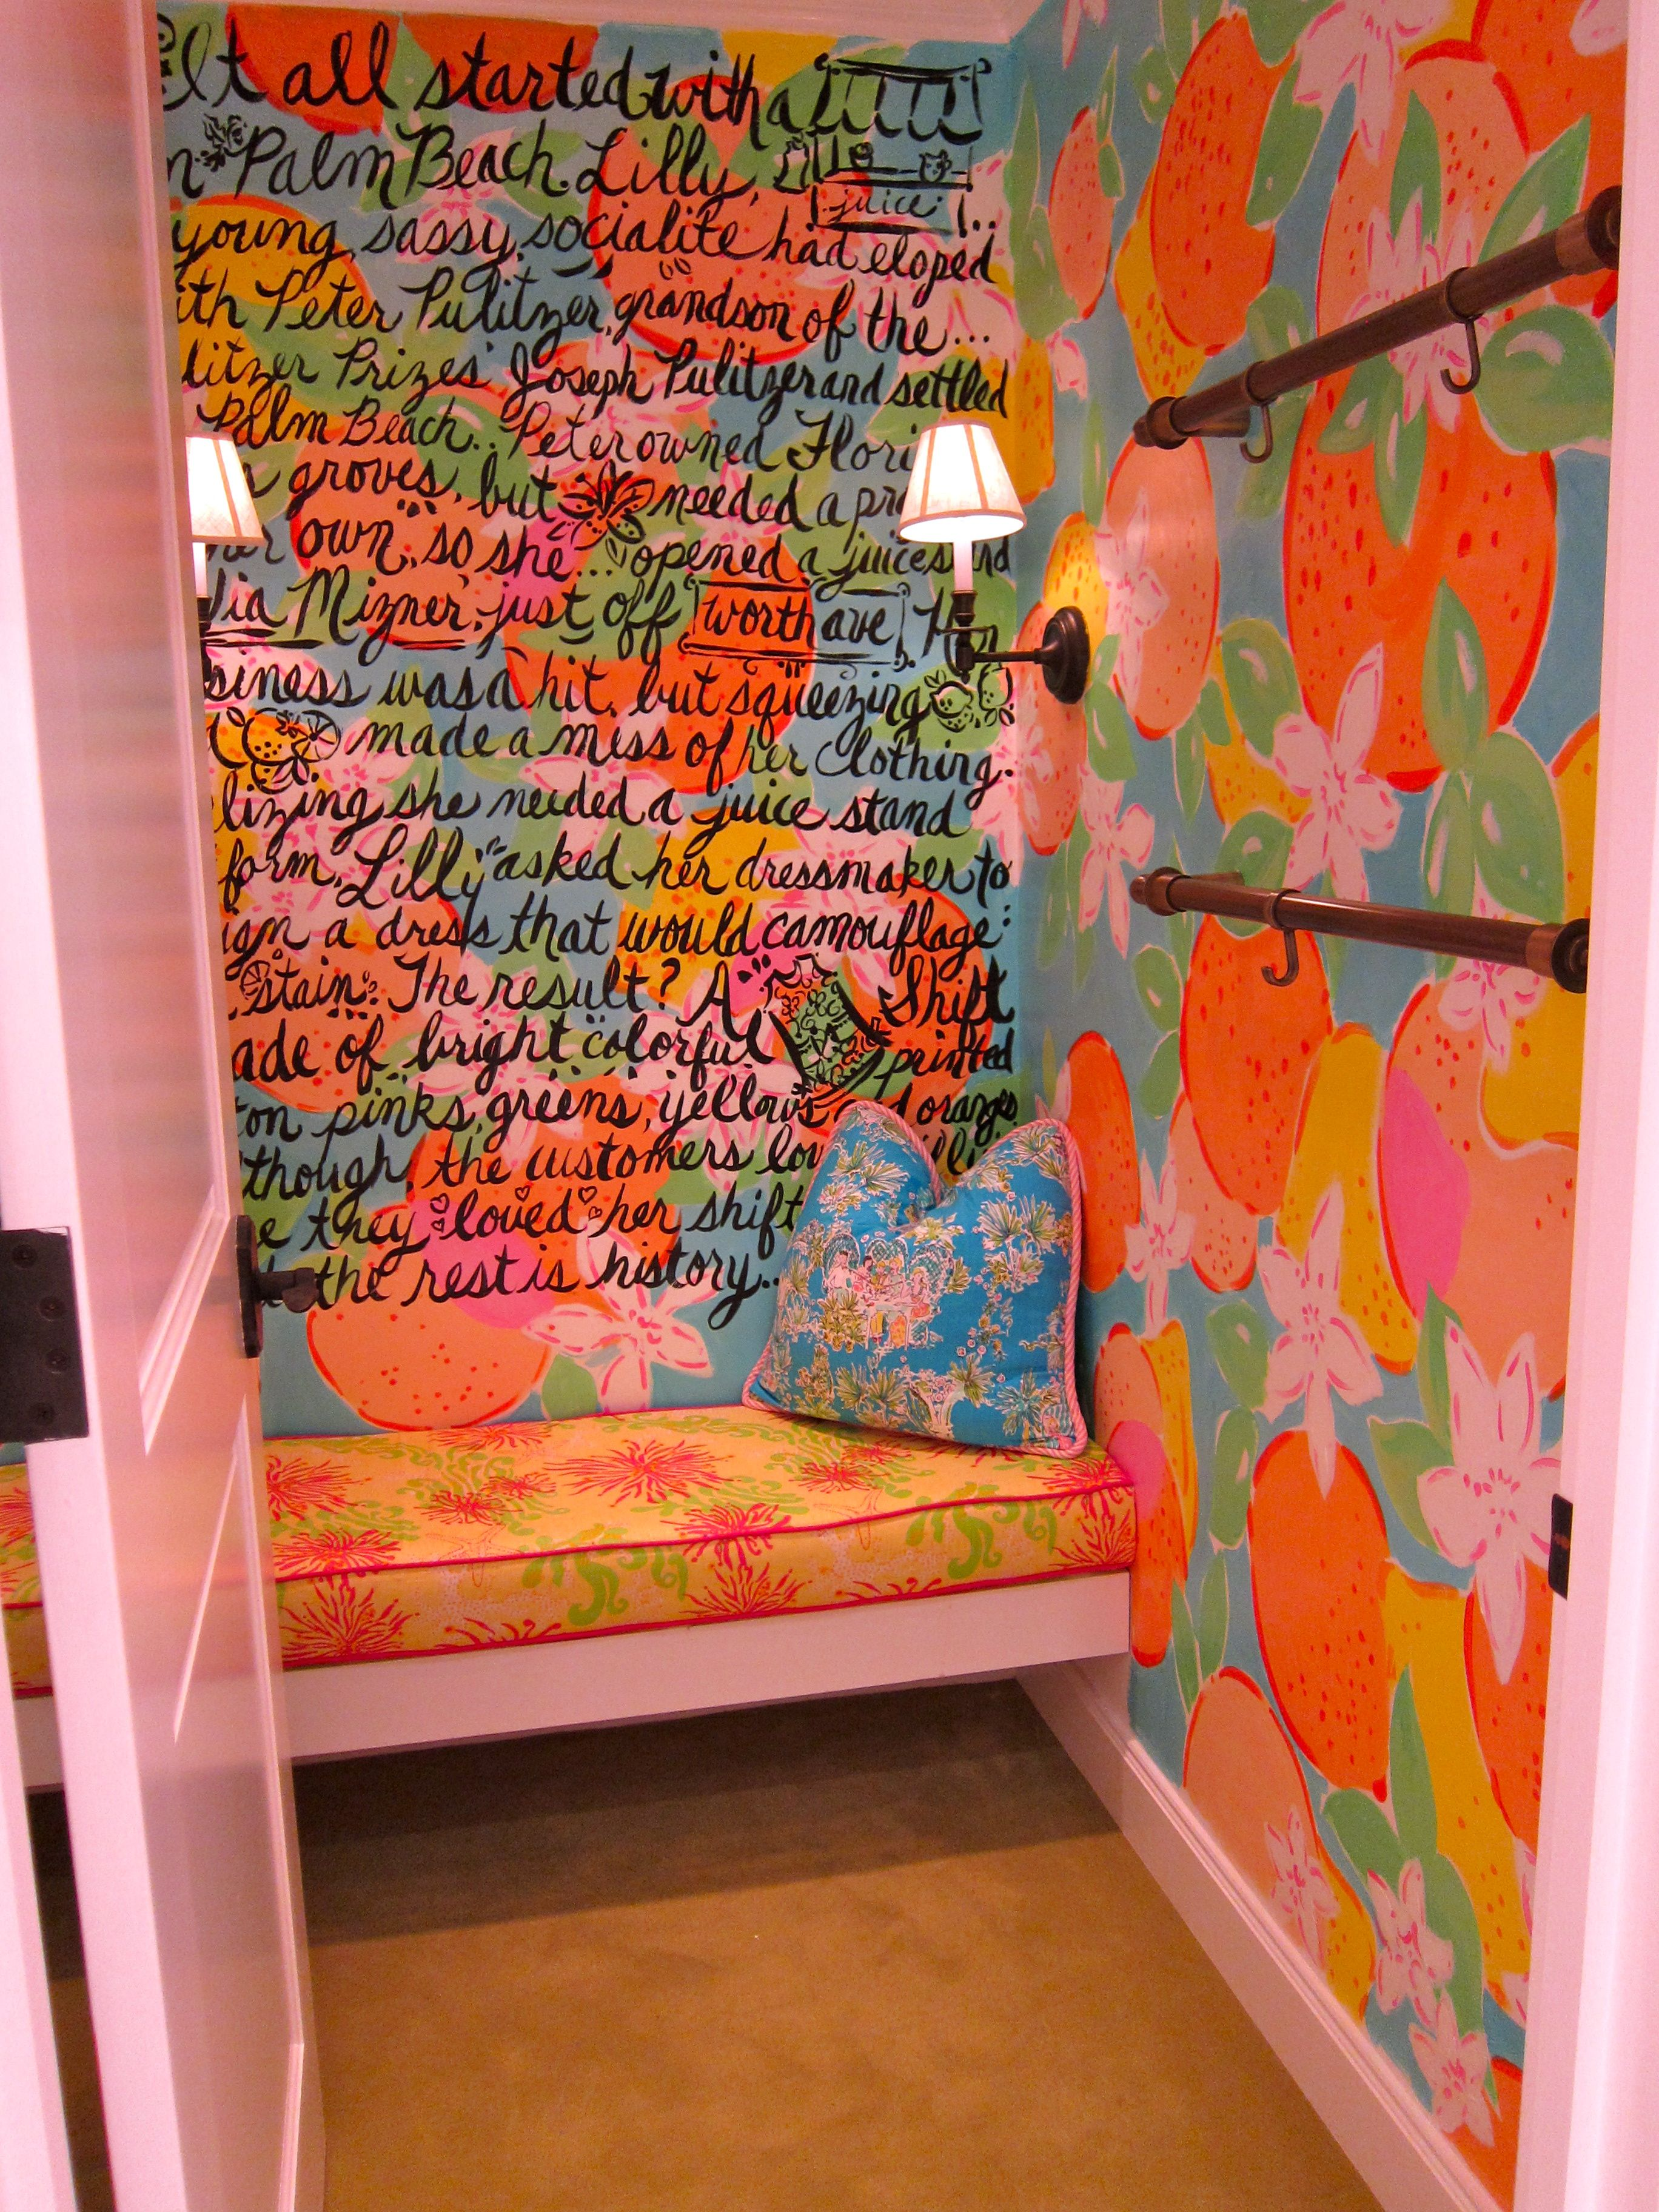 8712ecc26efc53 Brand storytelling in the fitting room inside a Lilly Pulitzer store.  #retail #branding #storytelling